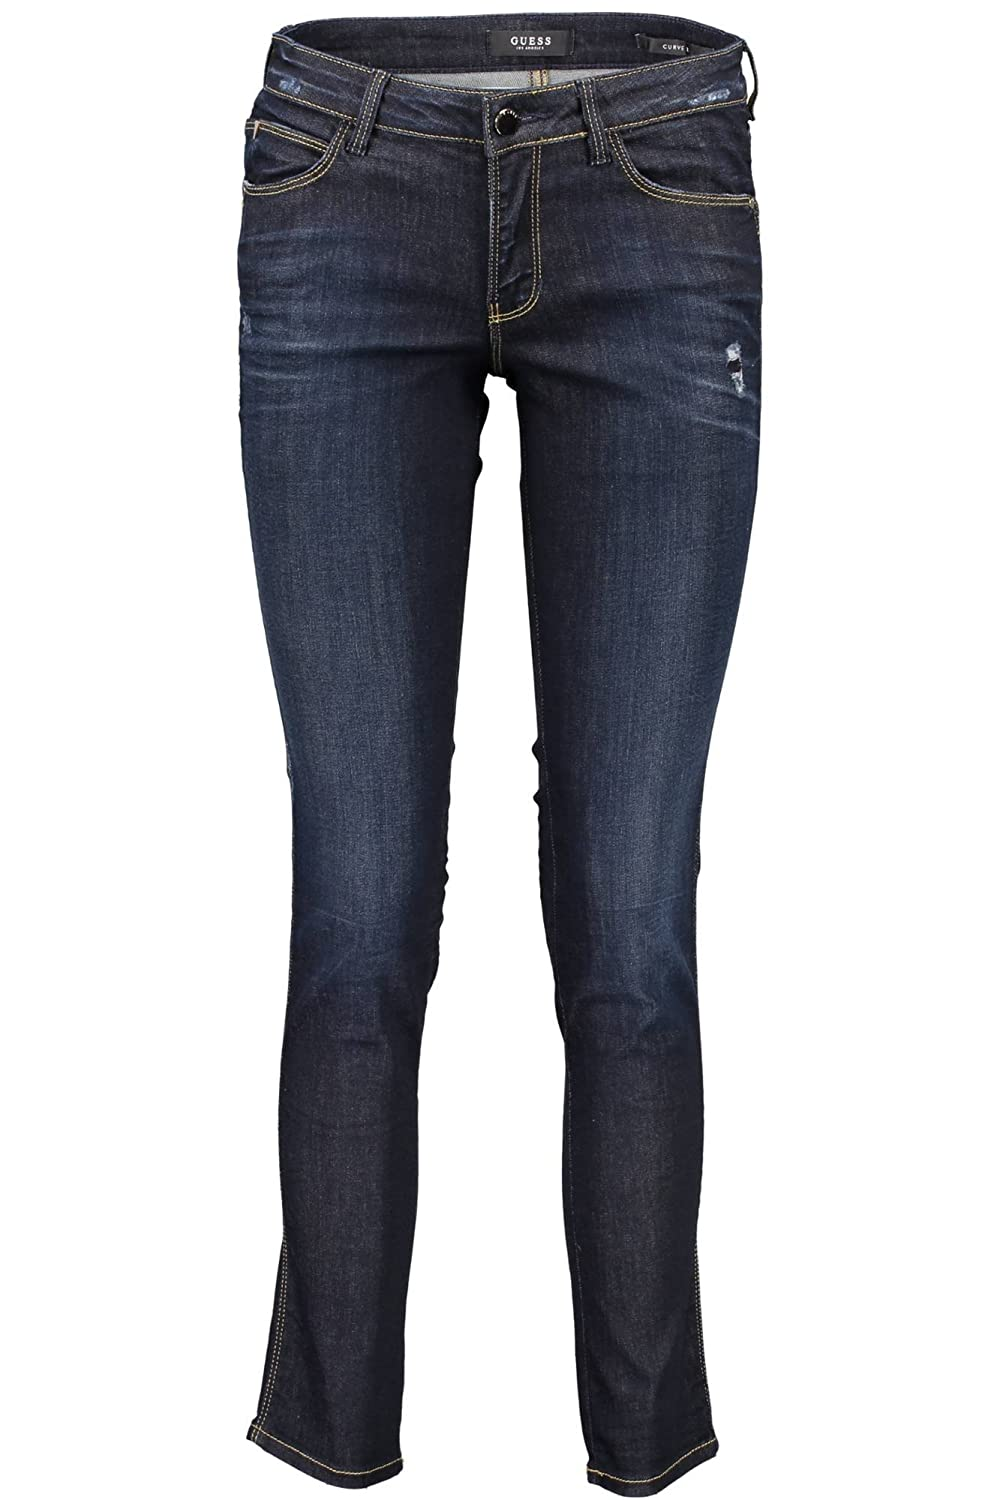 Guess Curve X Jeans Skinny Fit Donna Blu Denim